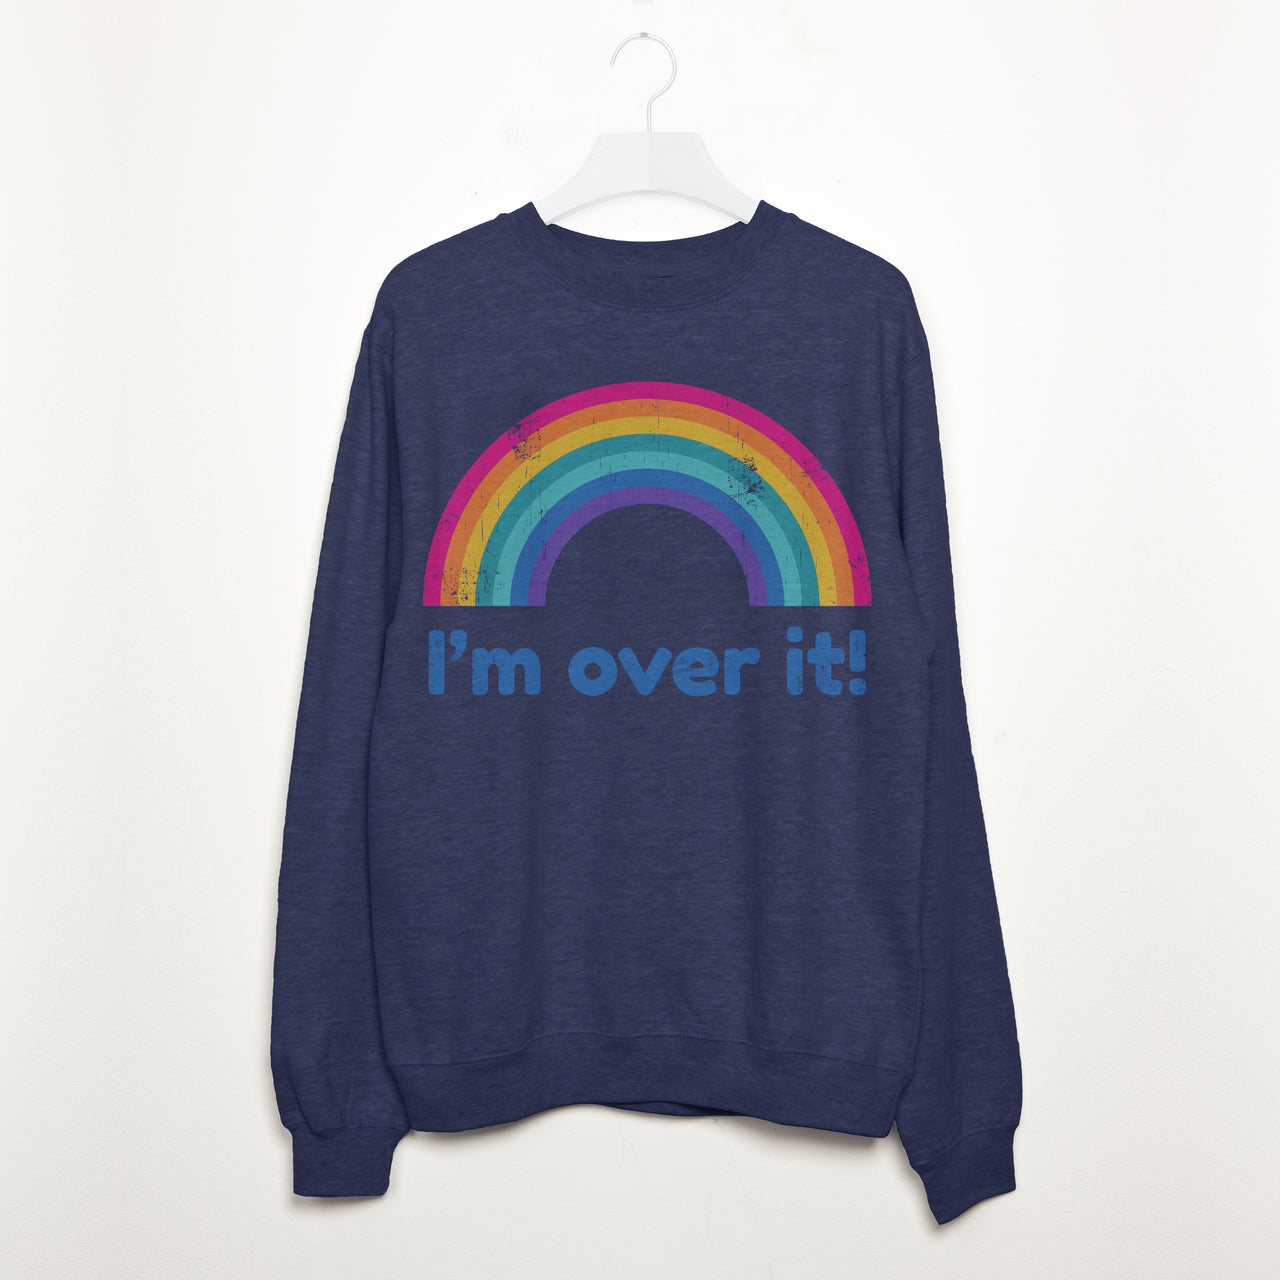 I'm Over It Women's Slogan Sweatshirt